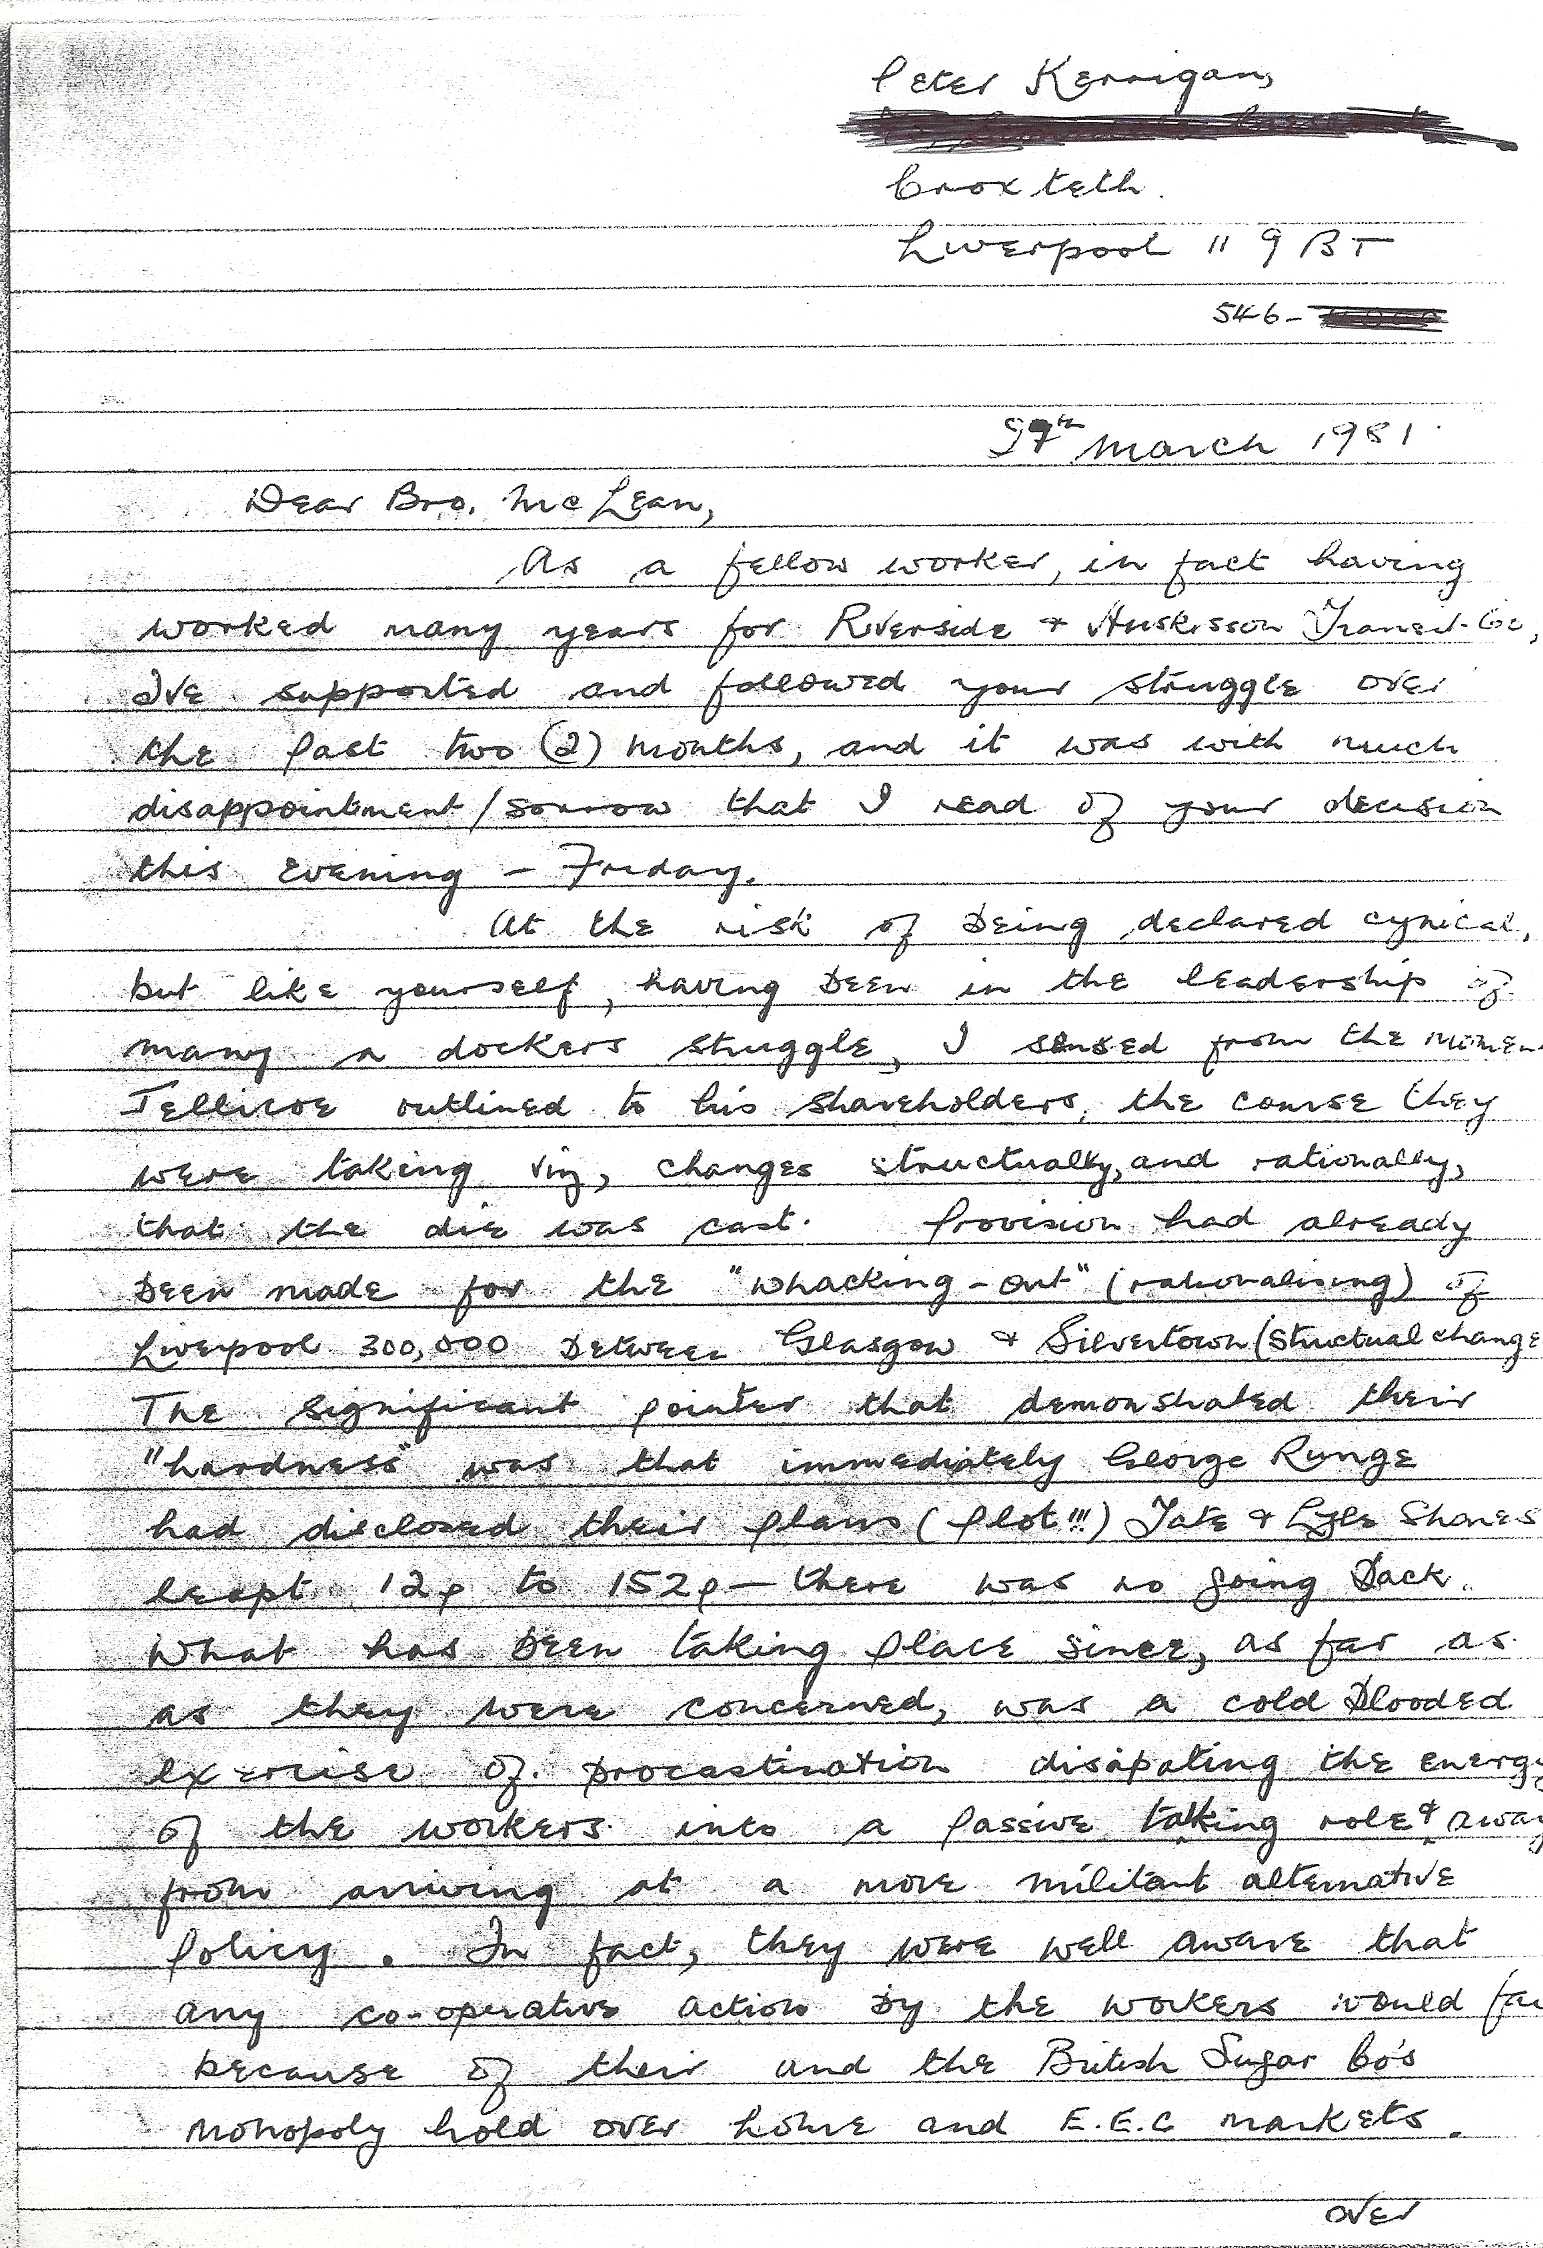 Peter Kerrigan's letter to John